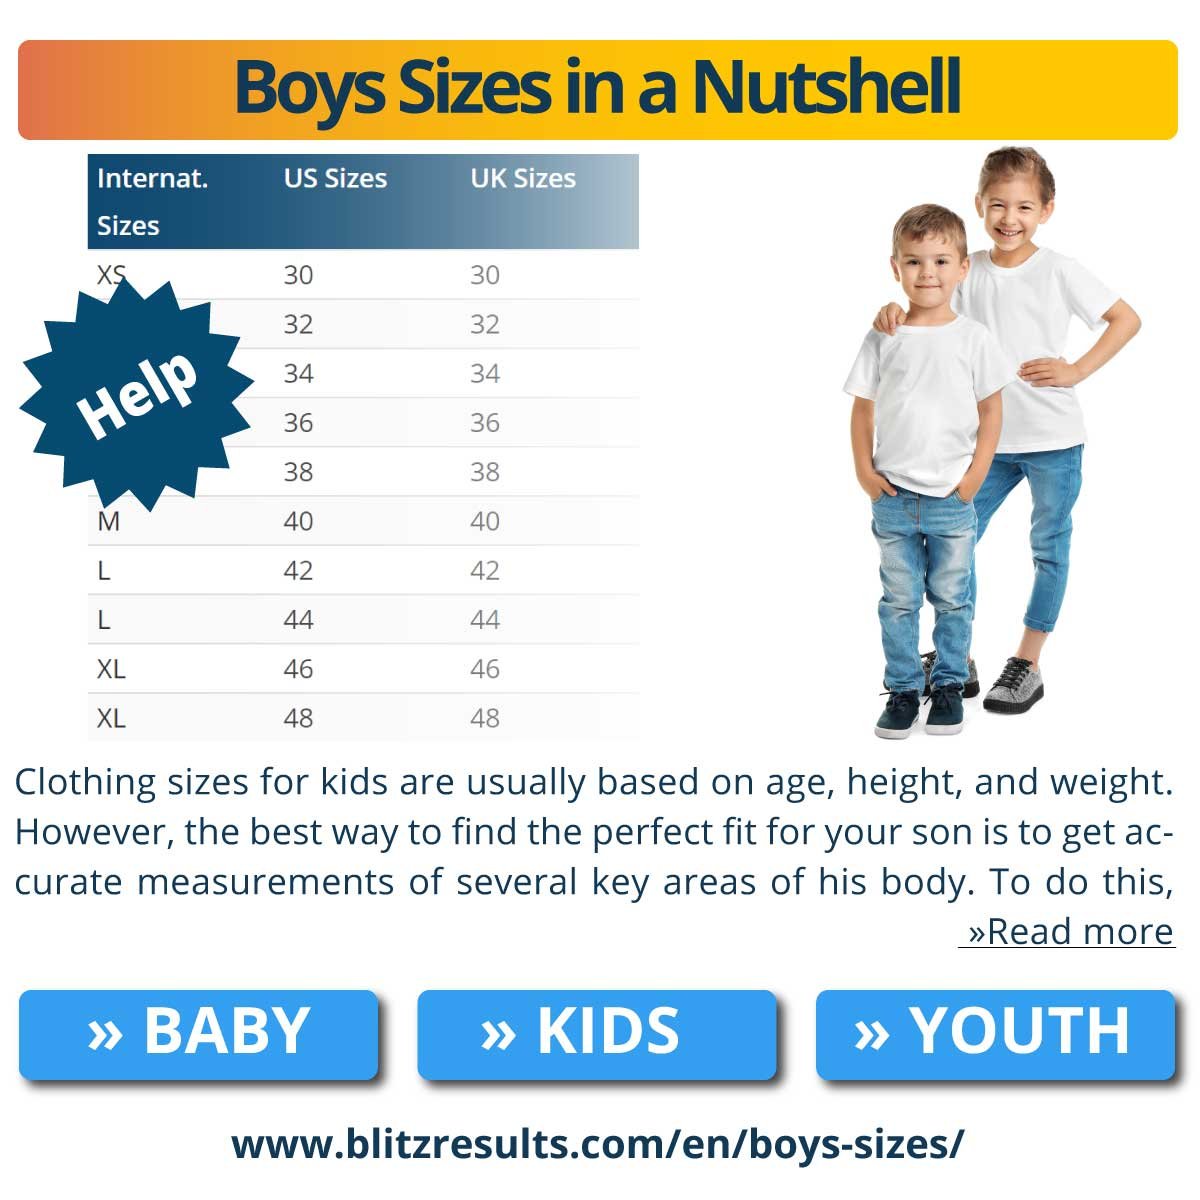 Boys Sizes in a Nutshell